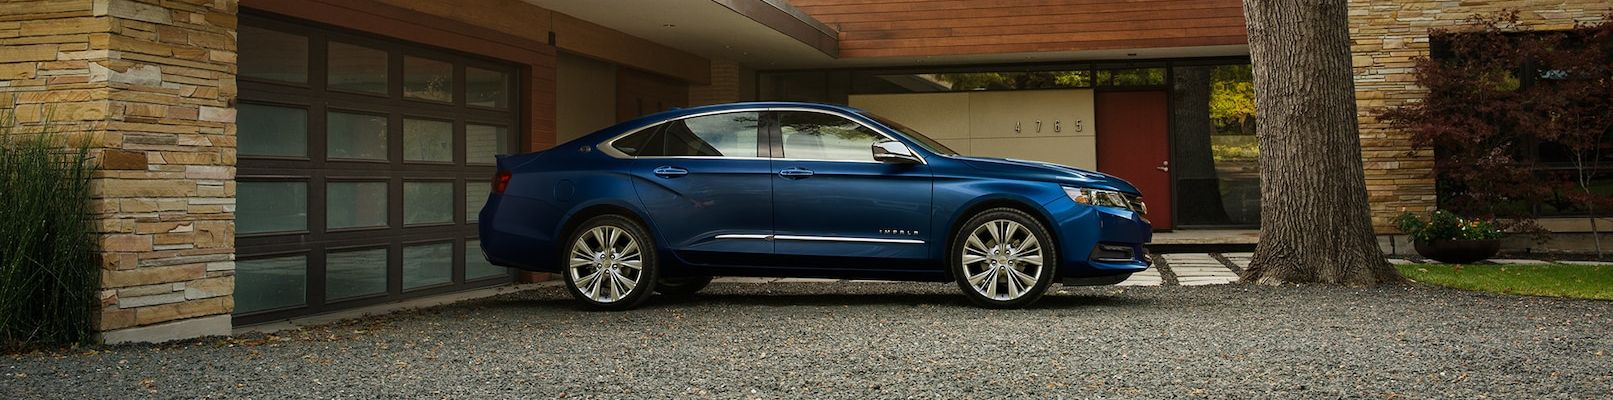 2018 Chevrolet Impala Leasing near Washington, DC